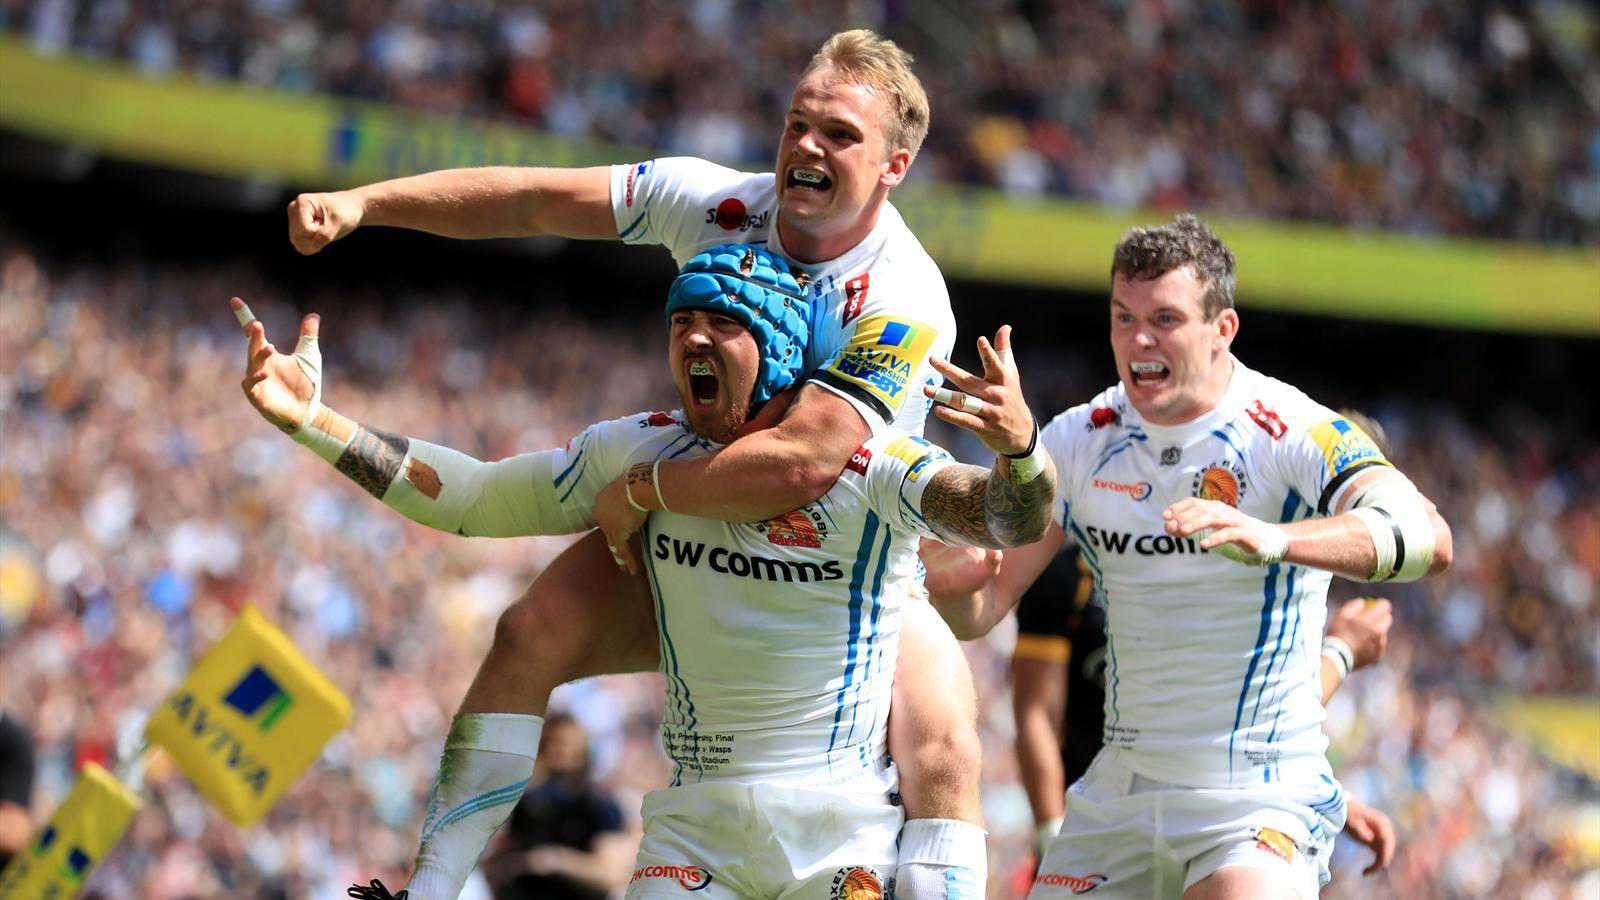 Le Top 5 des sites de rencontre au Qu bec